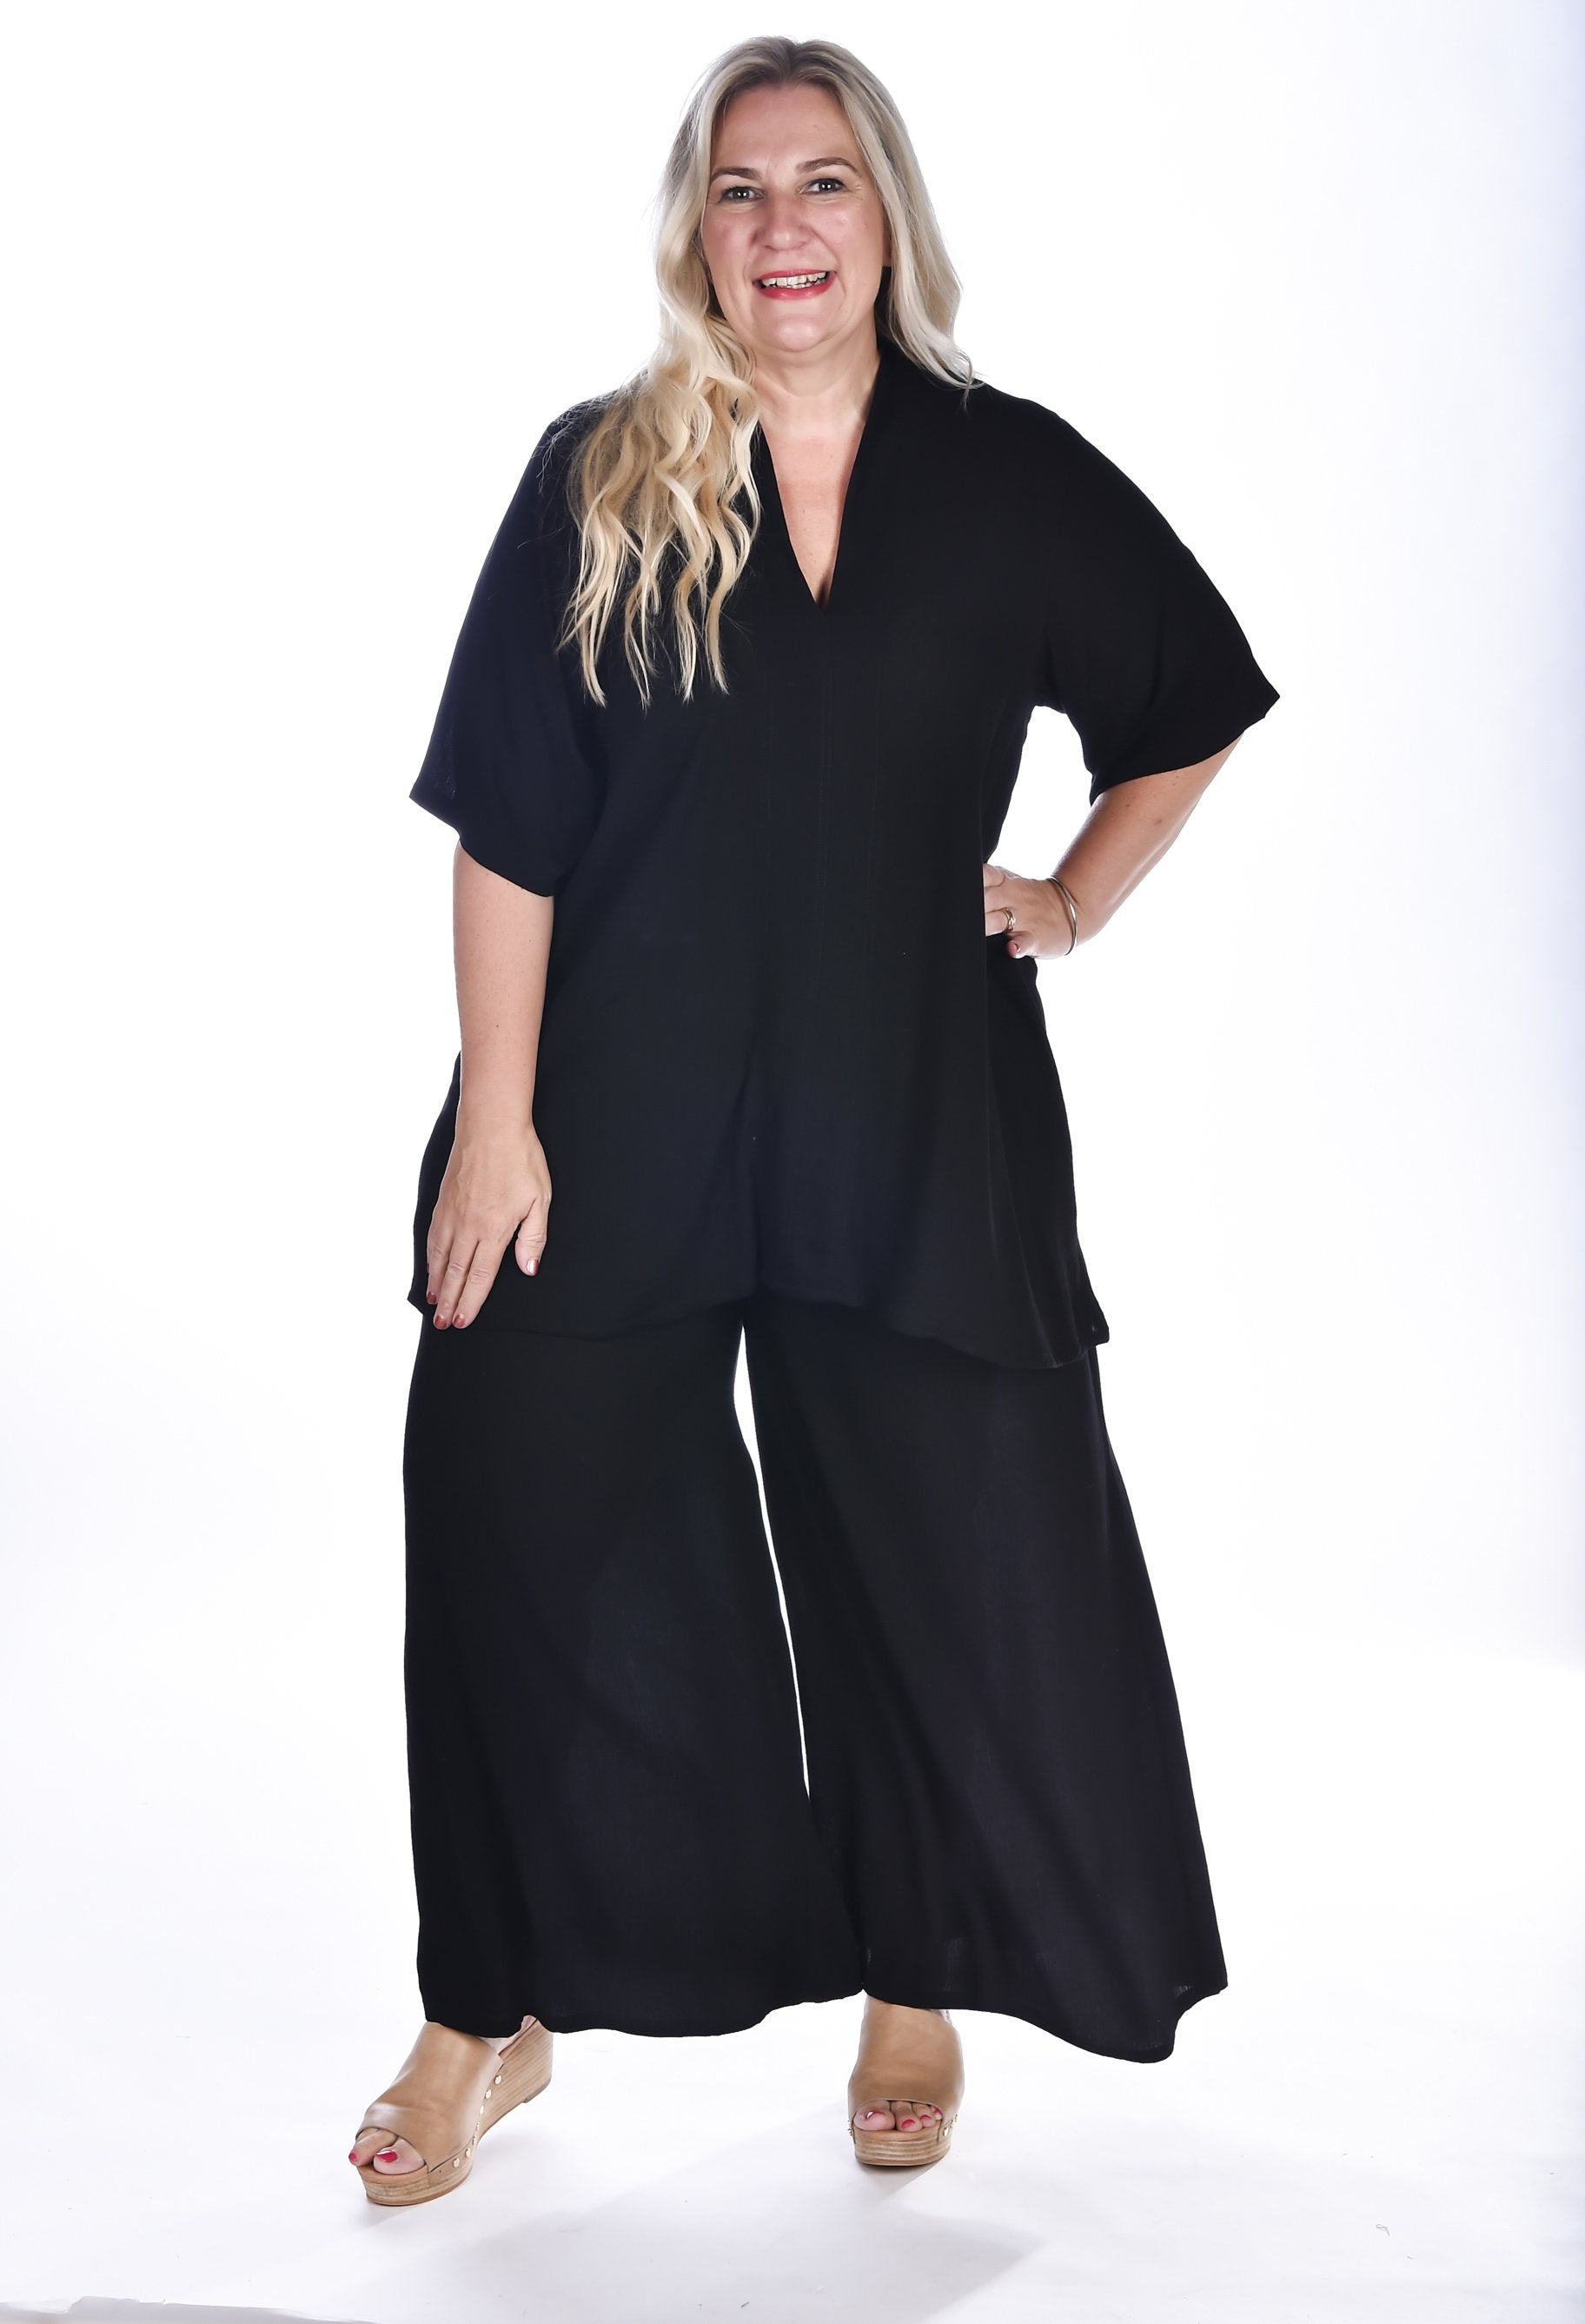 Plus-sized fashion